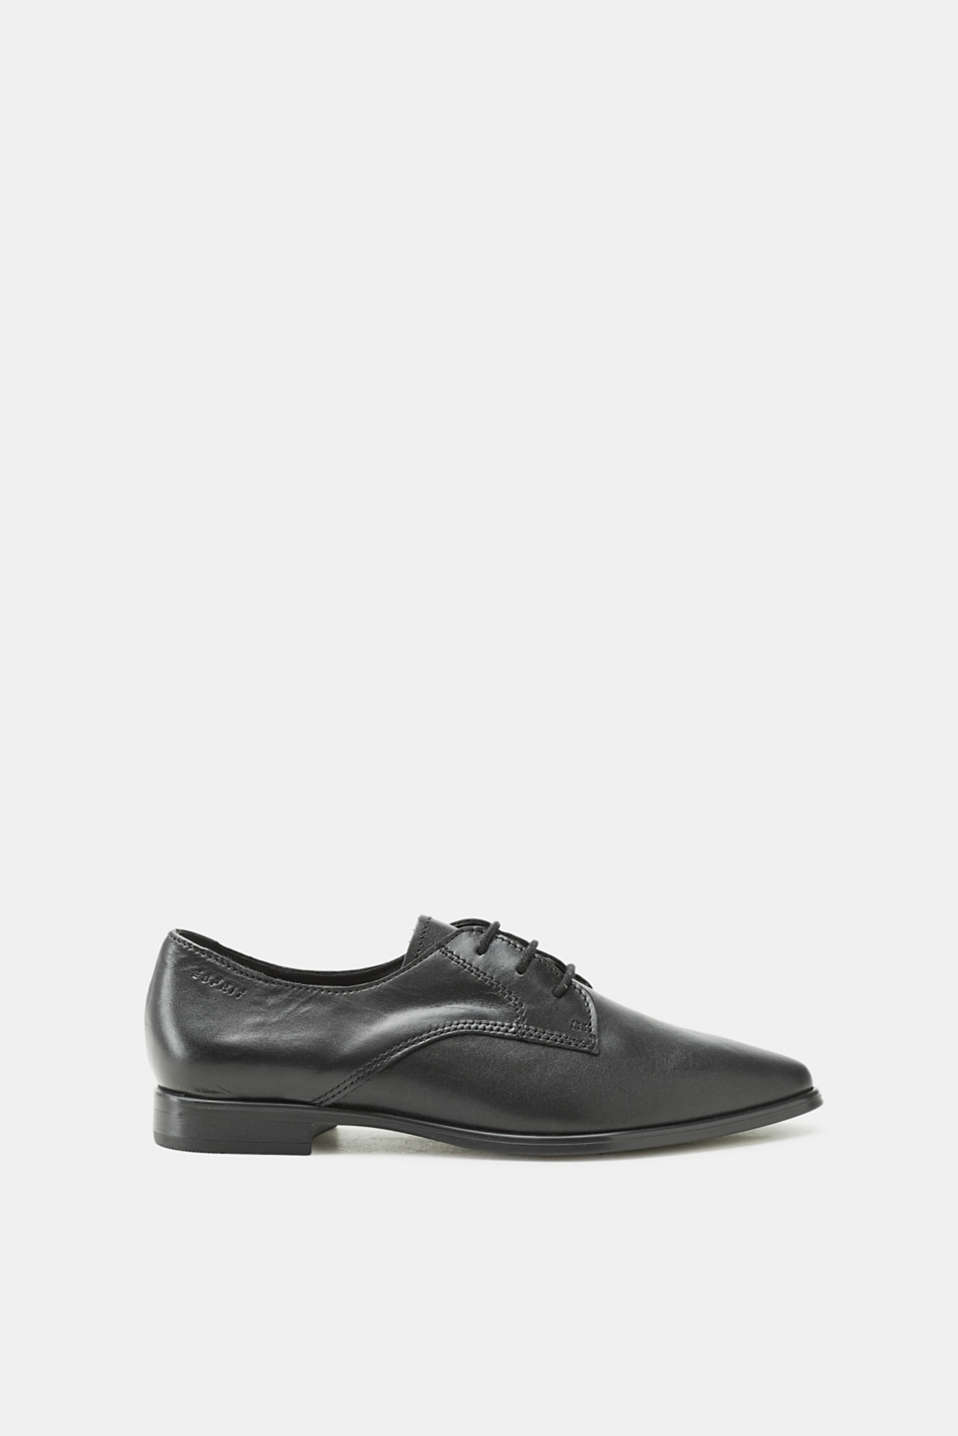 Esprit - Lace-up shoe made of calfskin